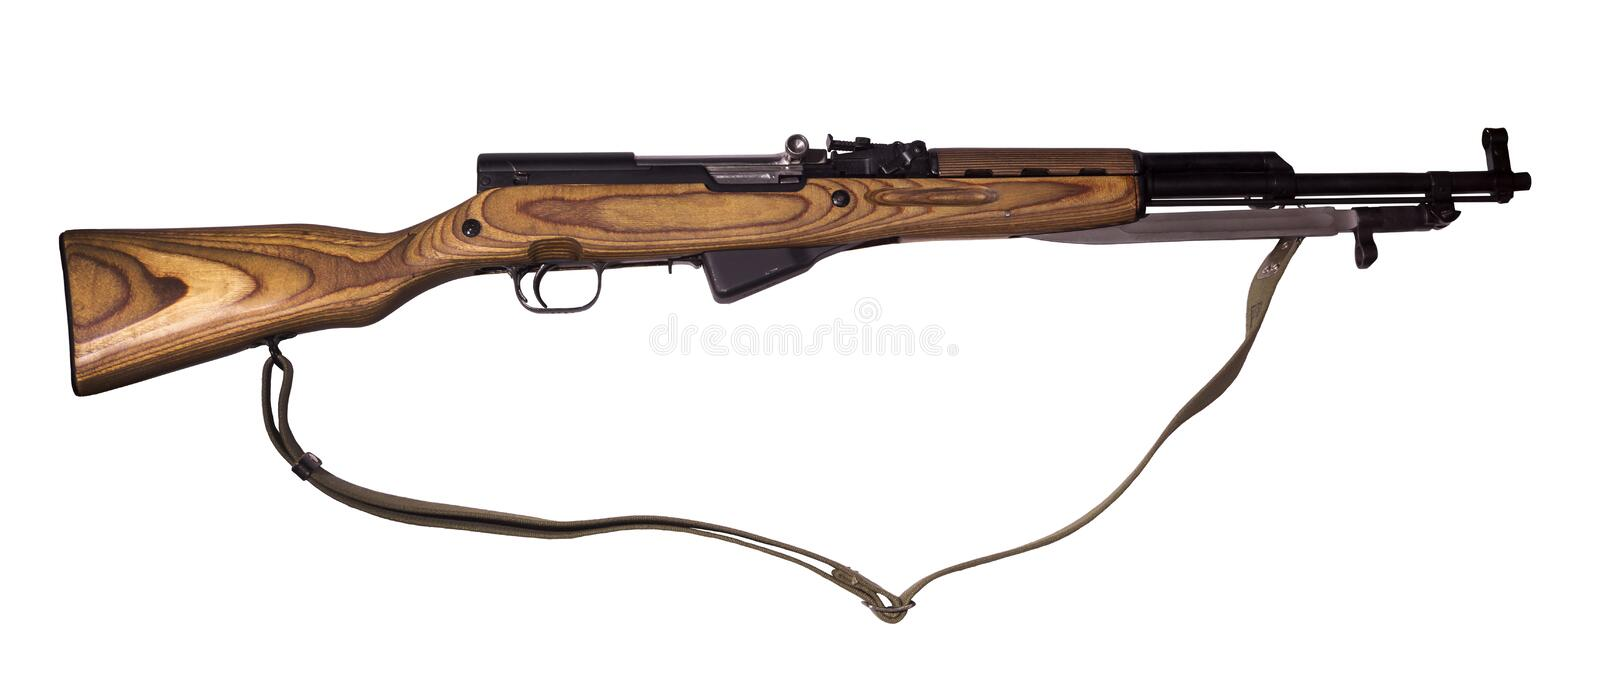 Semi-automatic carbine on white background. Semi-automatic carbine with bayonet in its closed position and with canvas belt, isolated royalty free stock photos